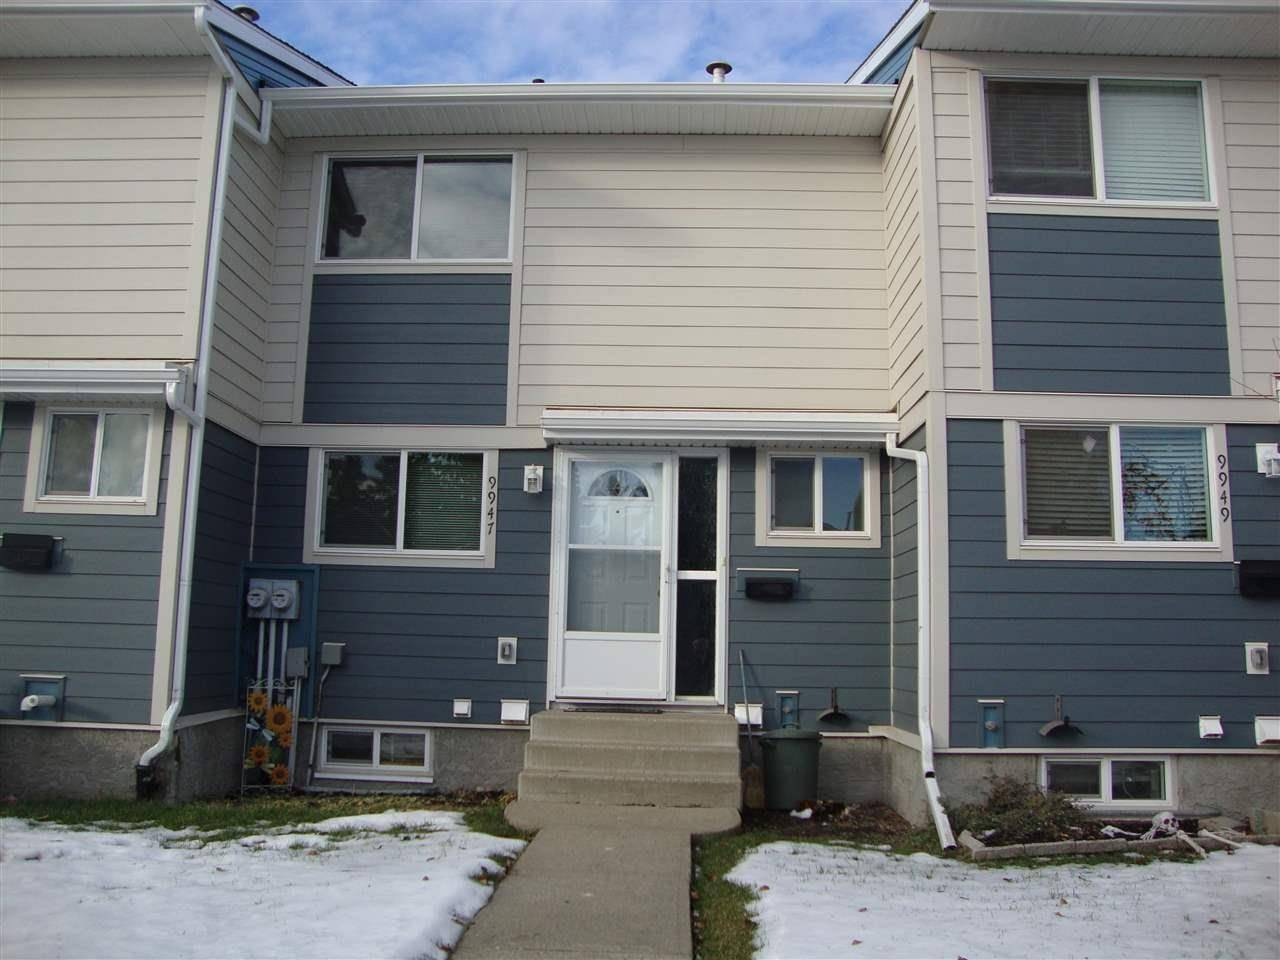 Townhouse for sale at 9947 171 Ave Nw Edmonton Alberta - MLS: E4180372